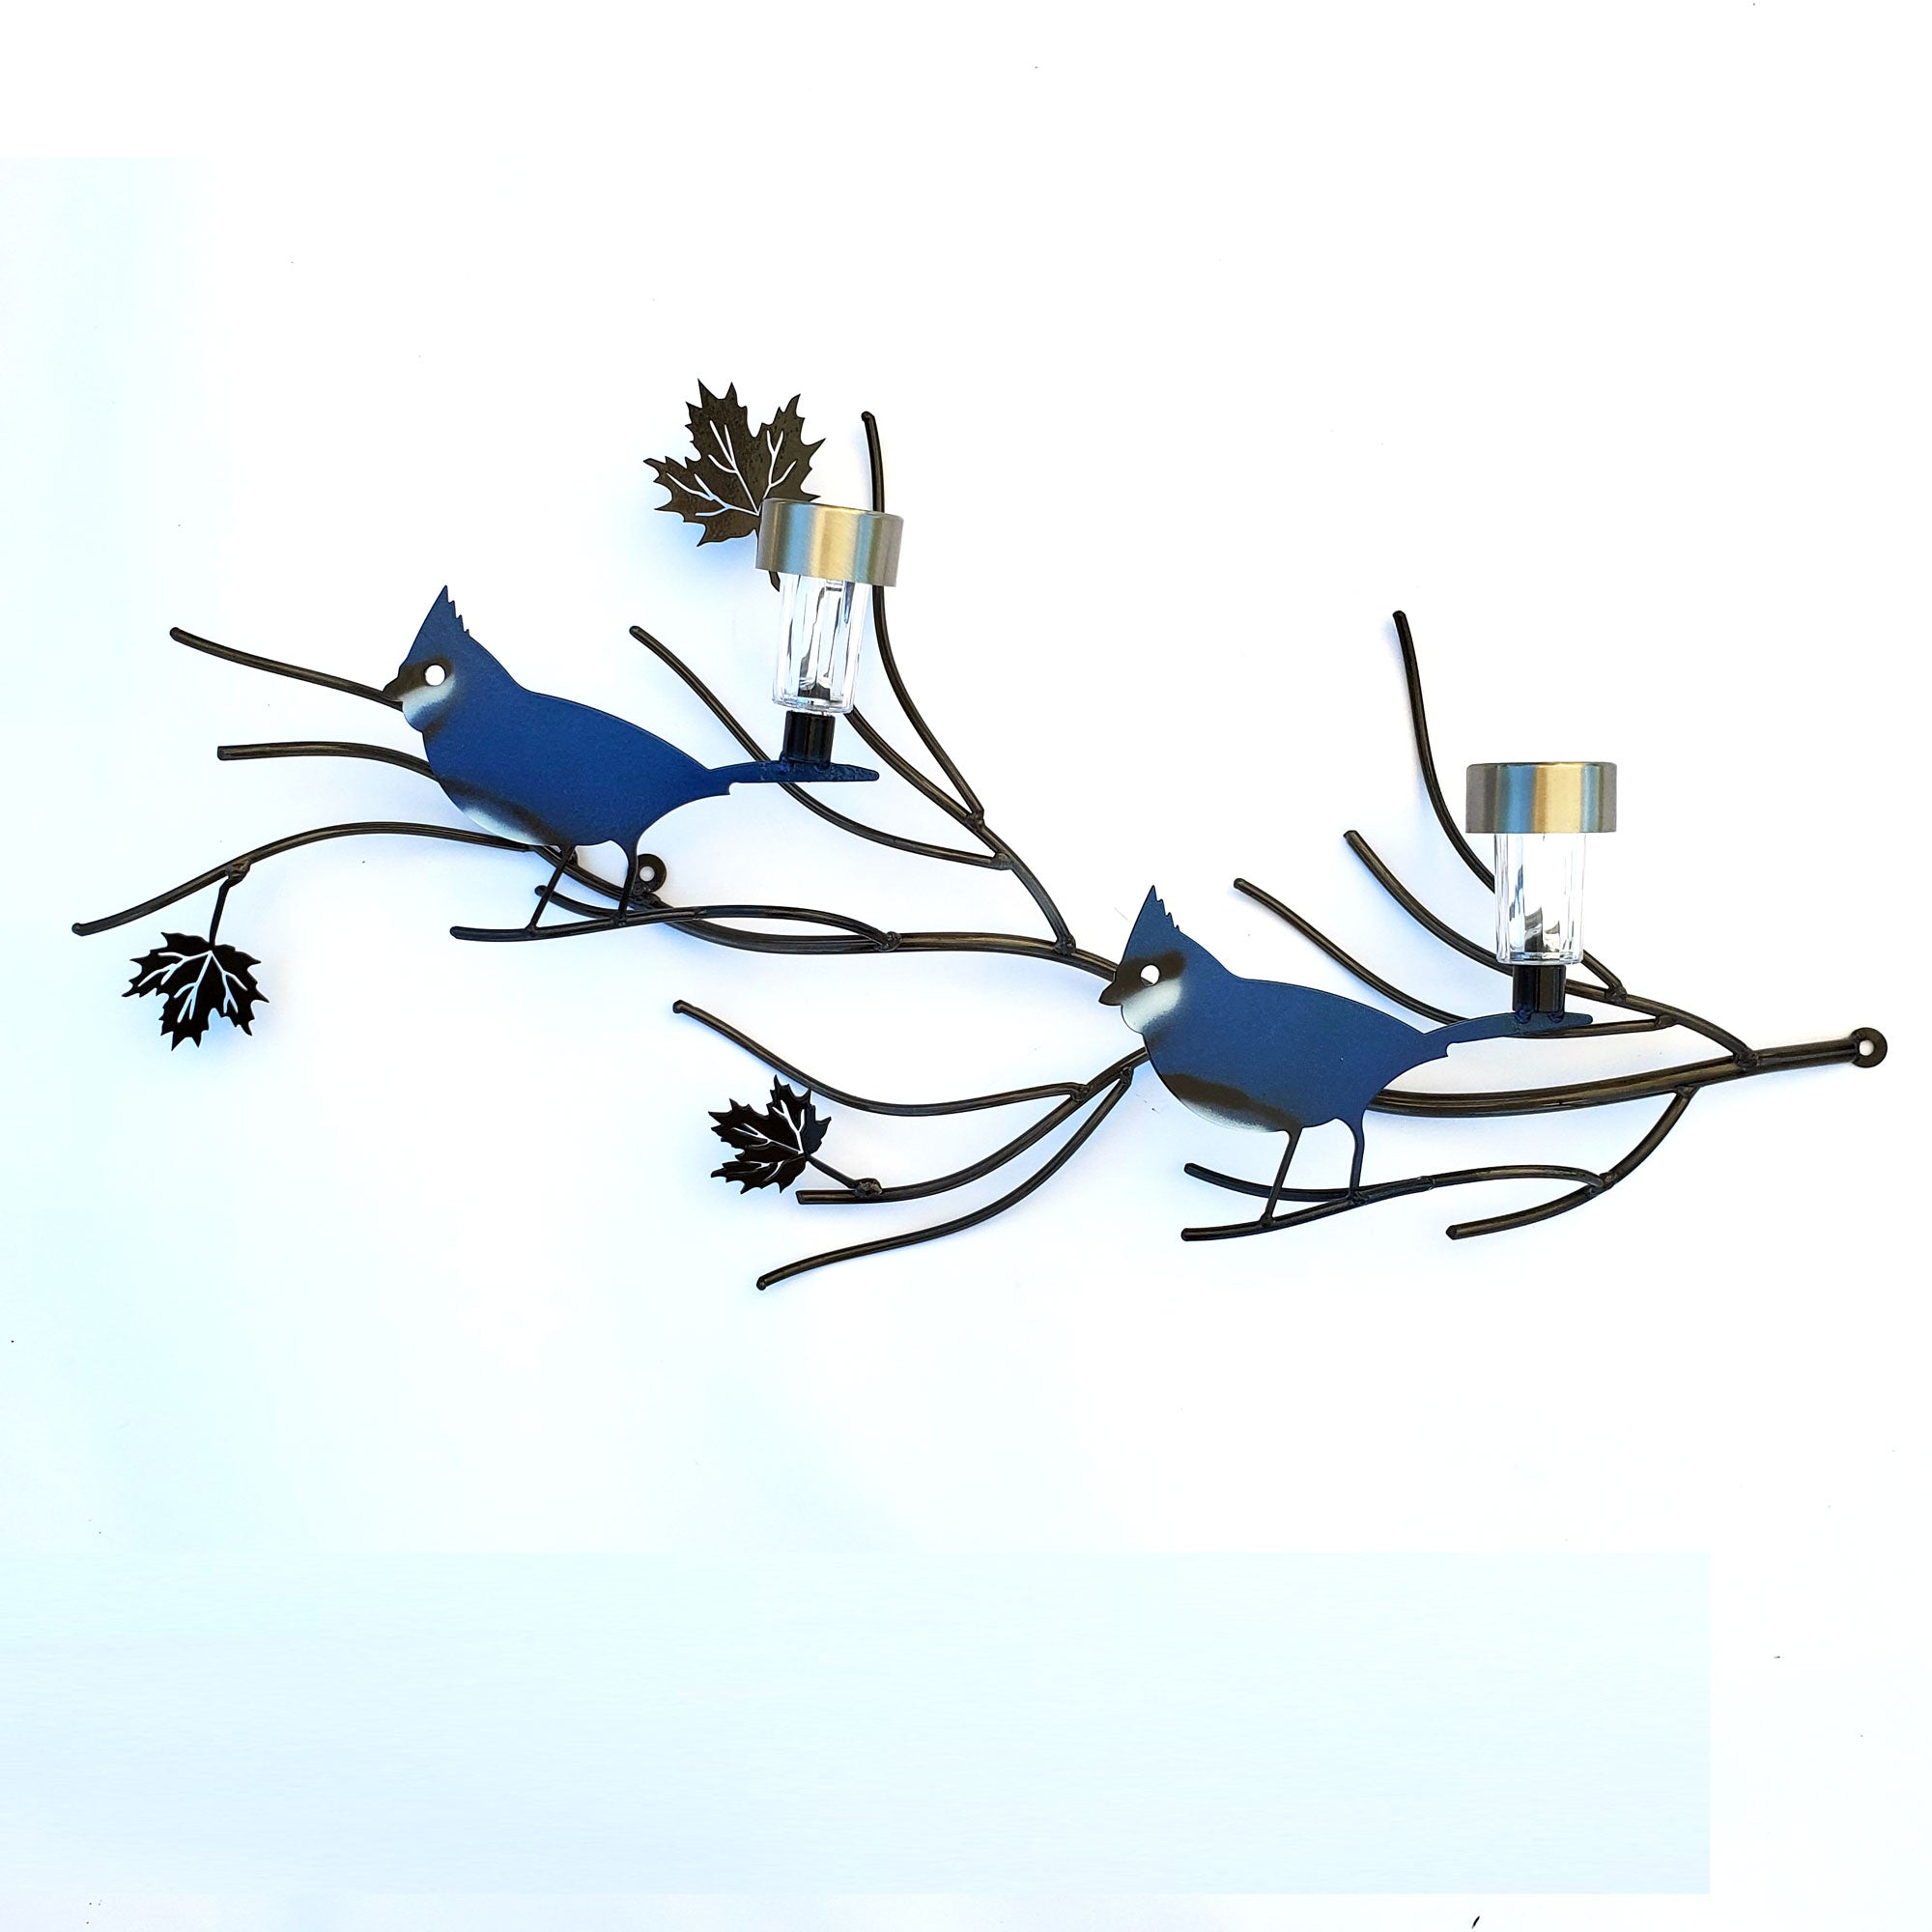 Two Blue Jay Sitting Together Solar Light Metal Wall Art | Home Garden Decor Gifts Item